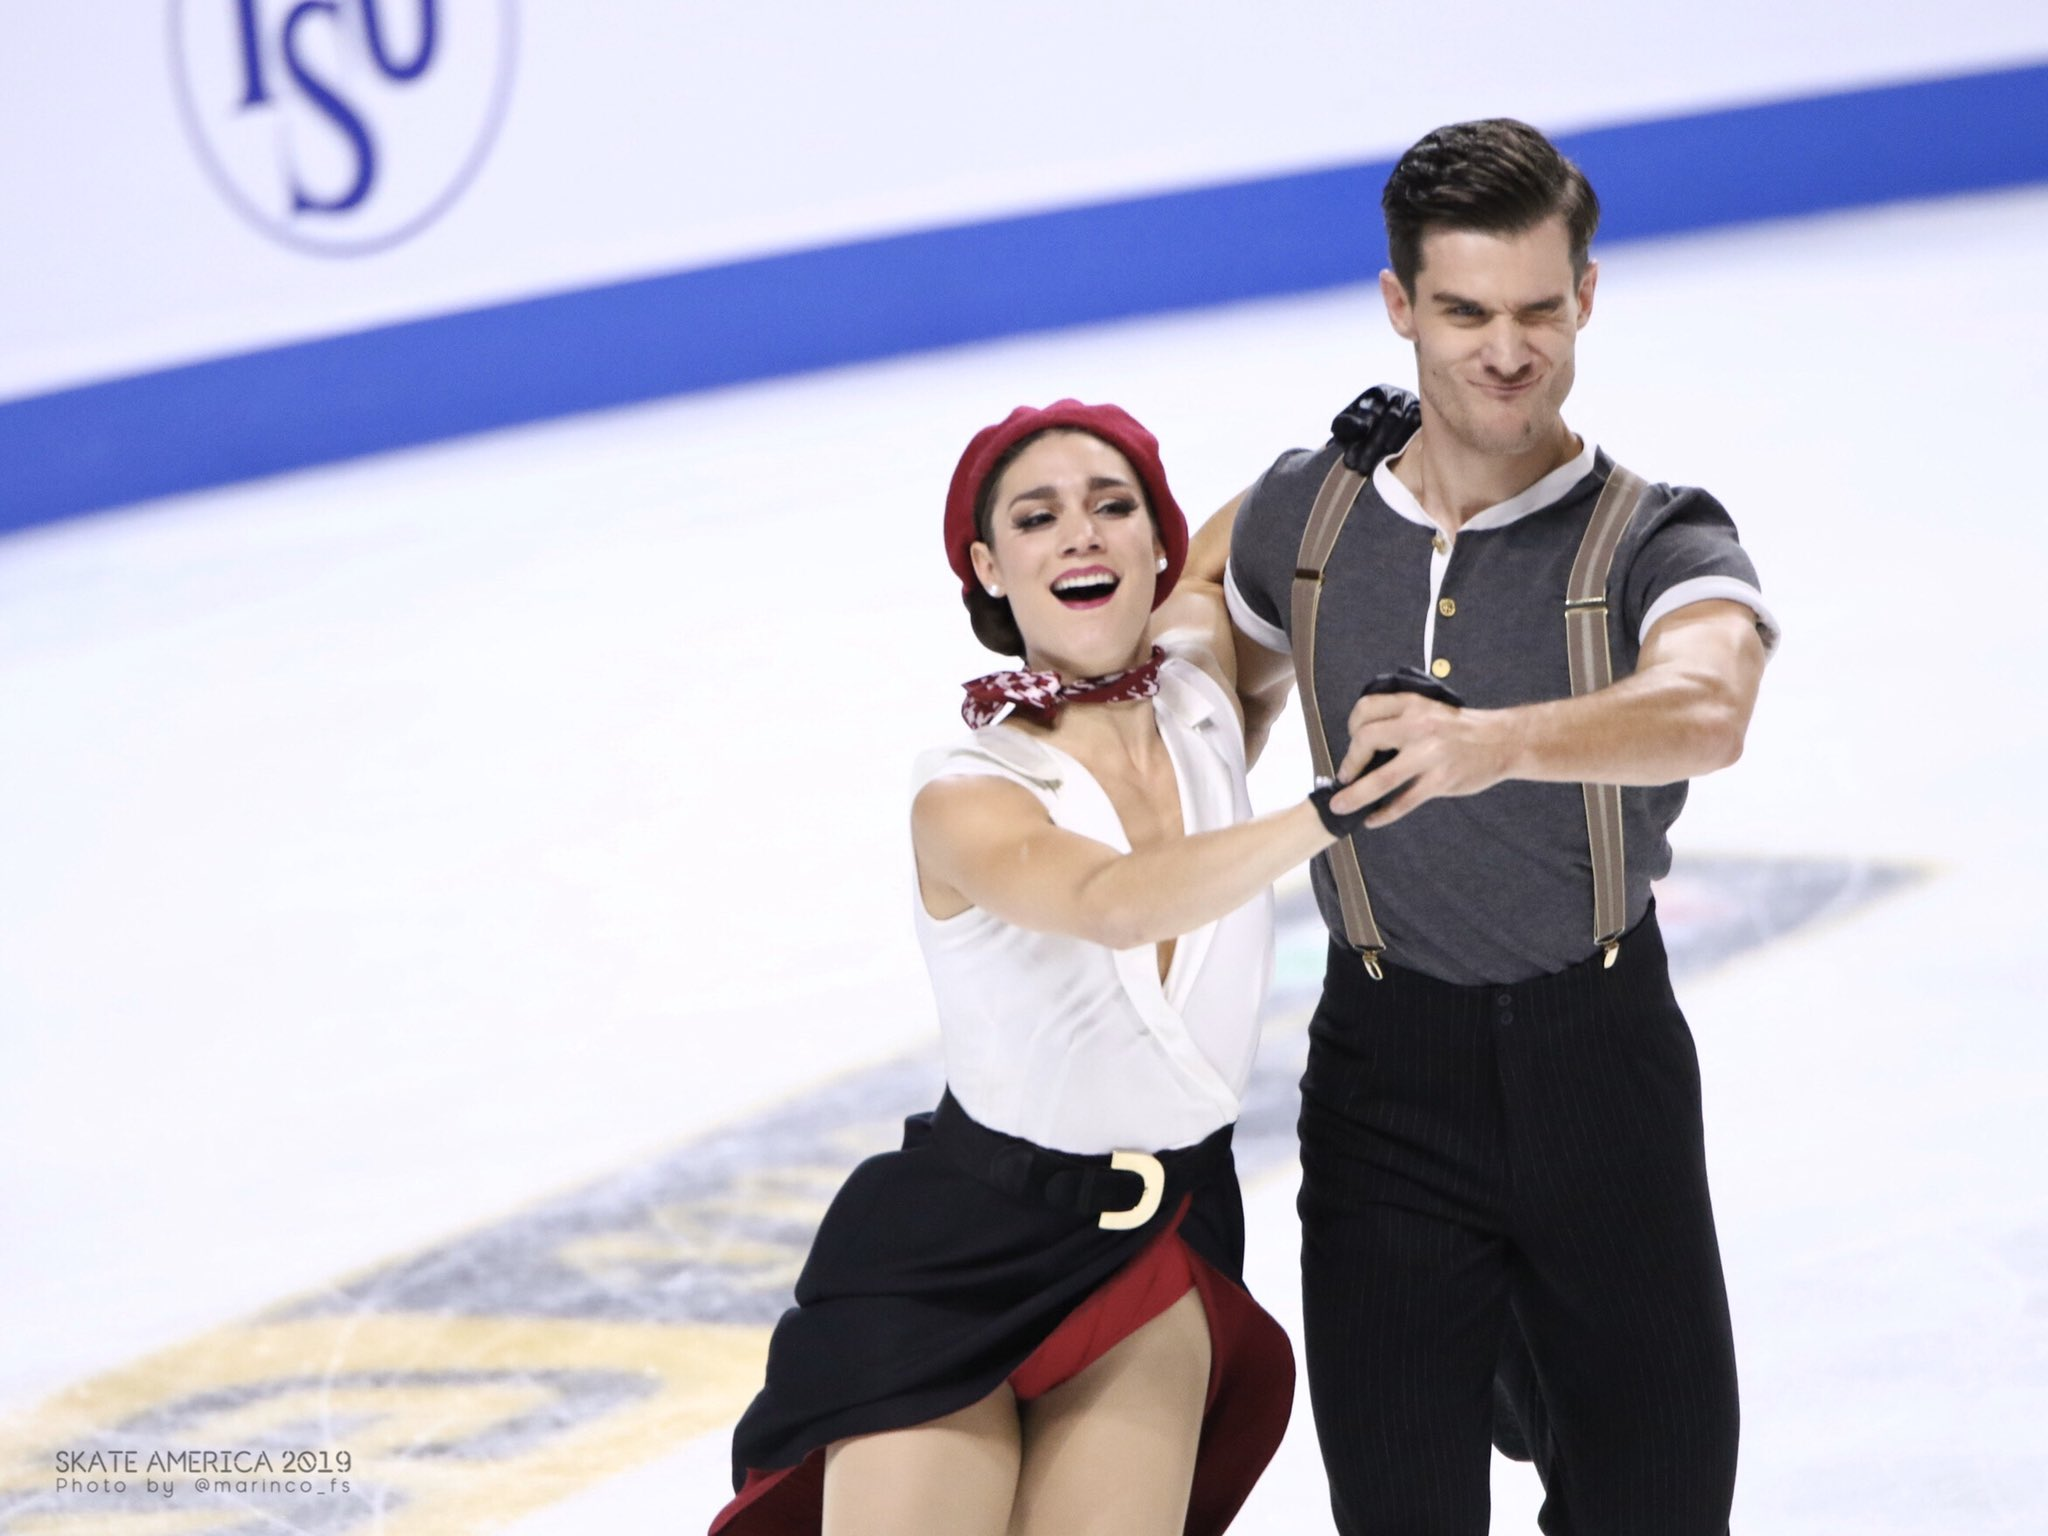 GP - 1 этап. Skate America Las Vegas, NV / USA October 18-20, 2019   - Страница 4 EHJQNlPVAAAdm1W?format=jpg&name=4096x4096